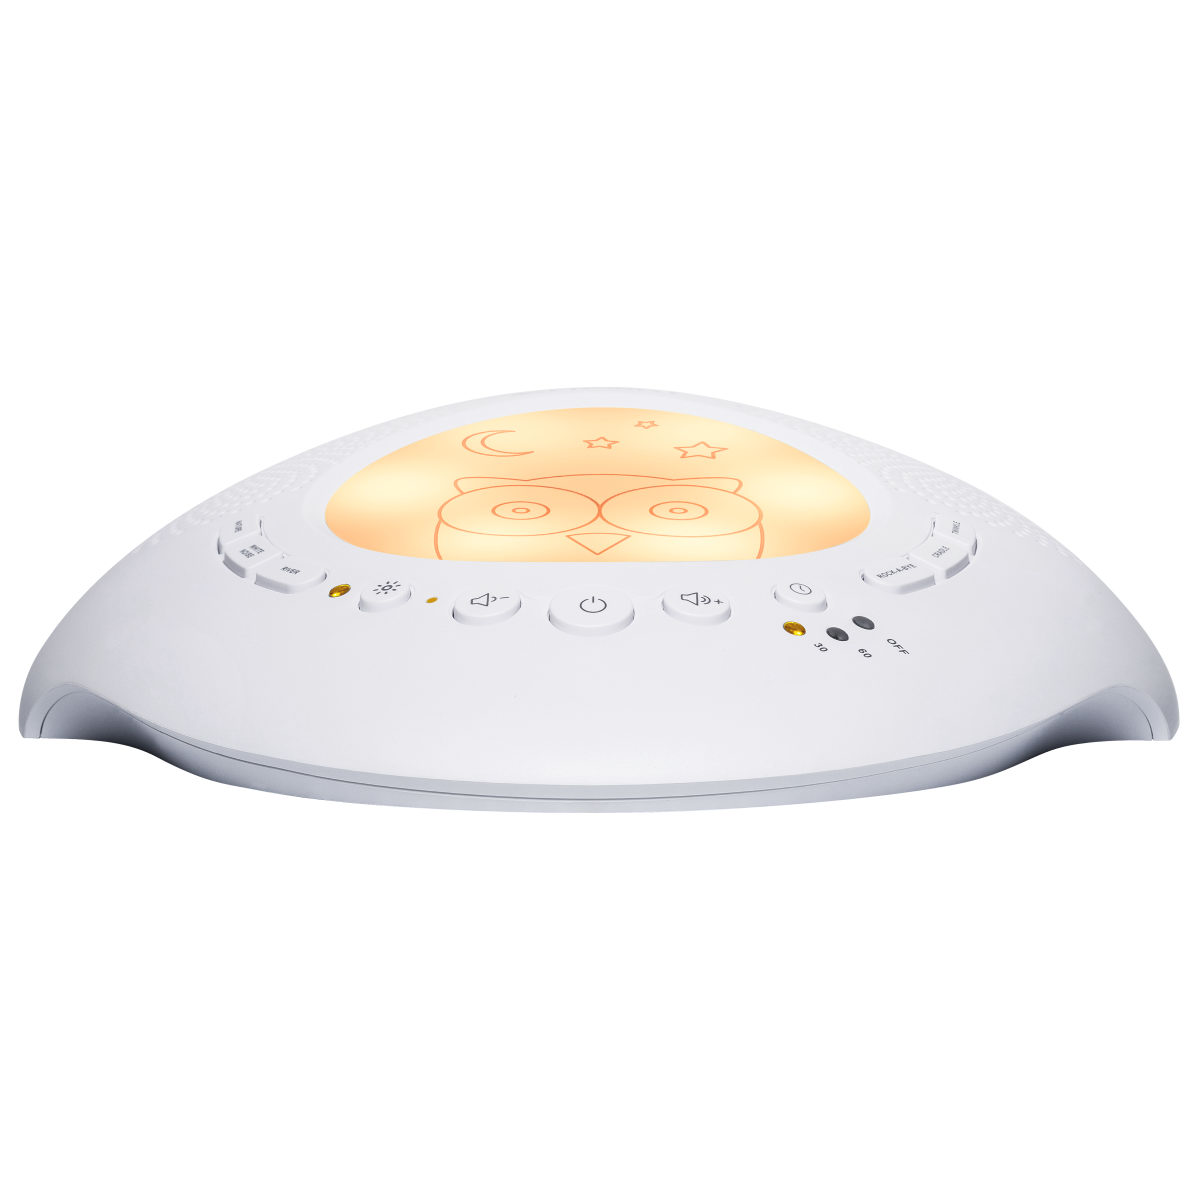 Buy an Oricom Soothing Sound Machine with Night Light ...